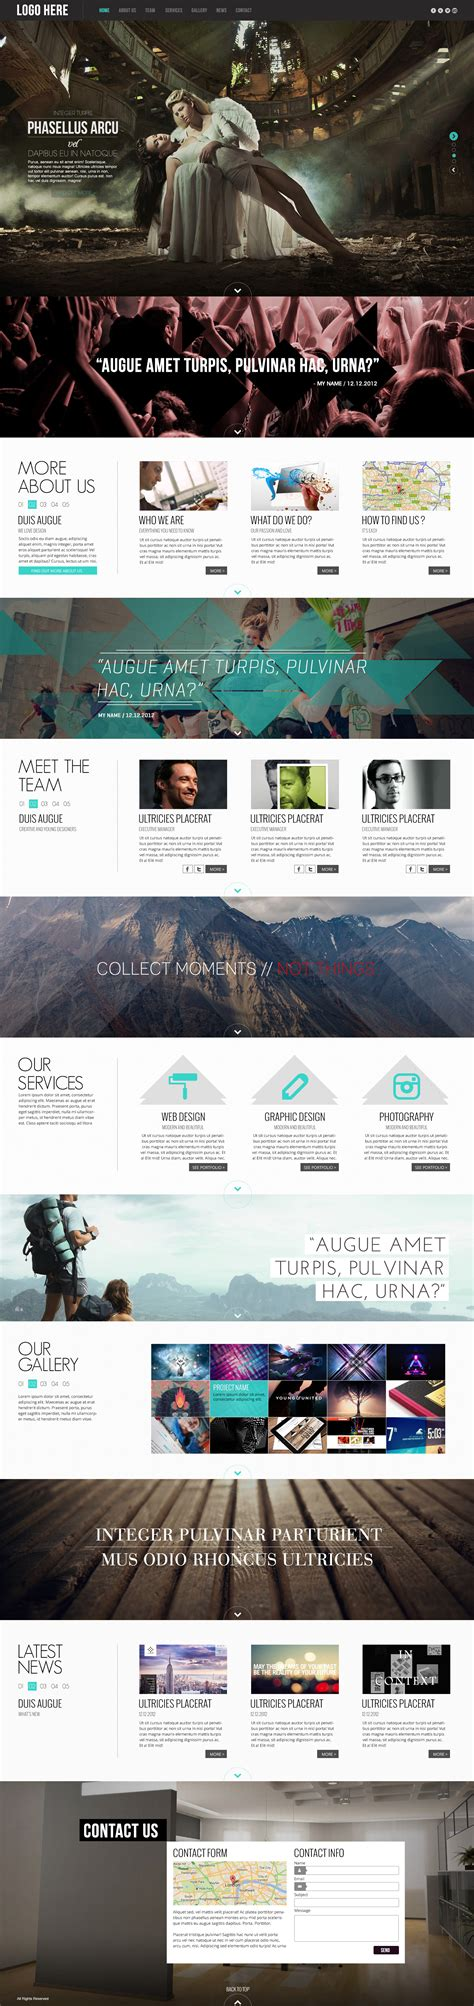 Pulsar One Page Html5 Parallax Website Template By Avathemes Themeforest Parallax Website Template